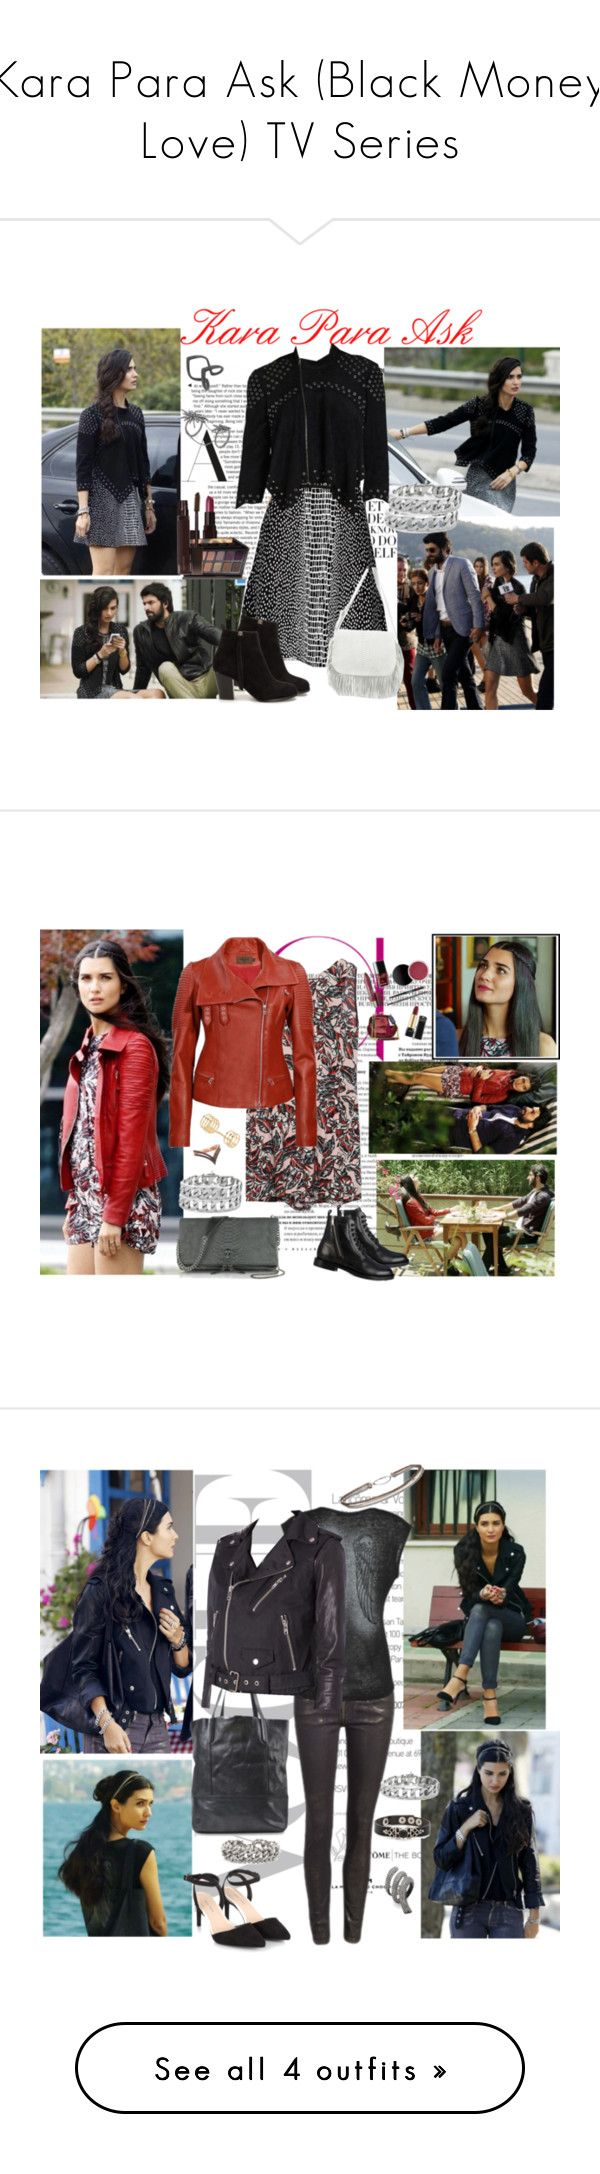 """""""Kara Para Ask (Black Money Love) TV Series"""" by chaneladdicted ❤ liked on Polyvore featuring Laura Mercier, BCBGMAXAZRIA, Nly Shoes, DESA, Zadig & Voltaire, Yves Saint Laurent, Morgan, Valentino and Hermès"""